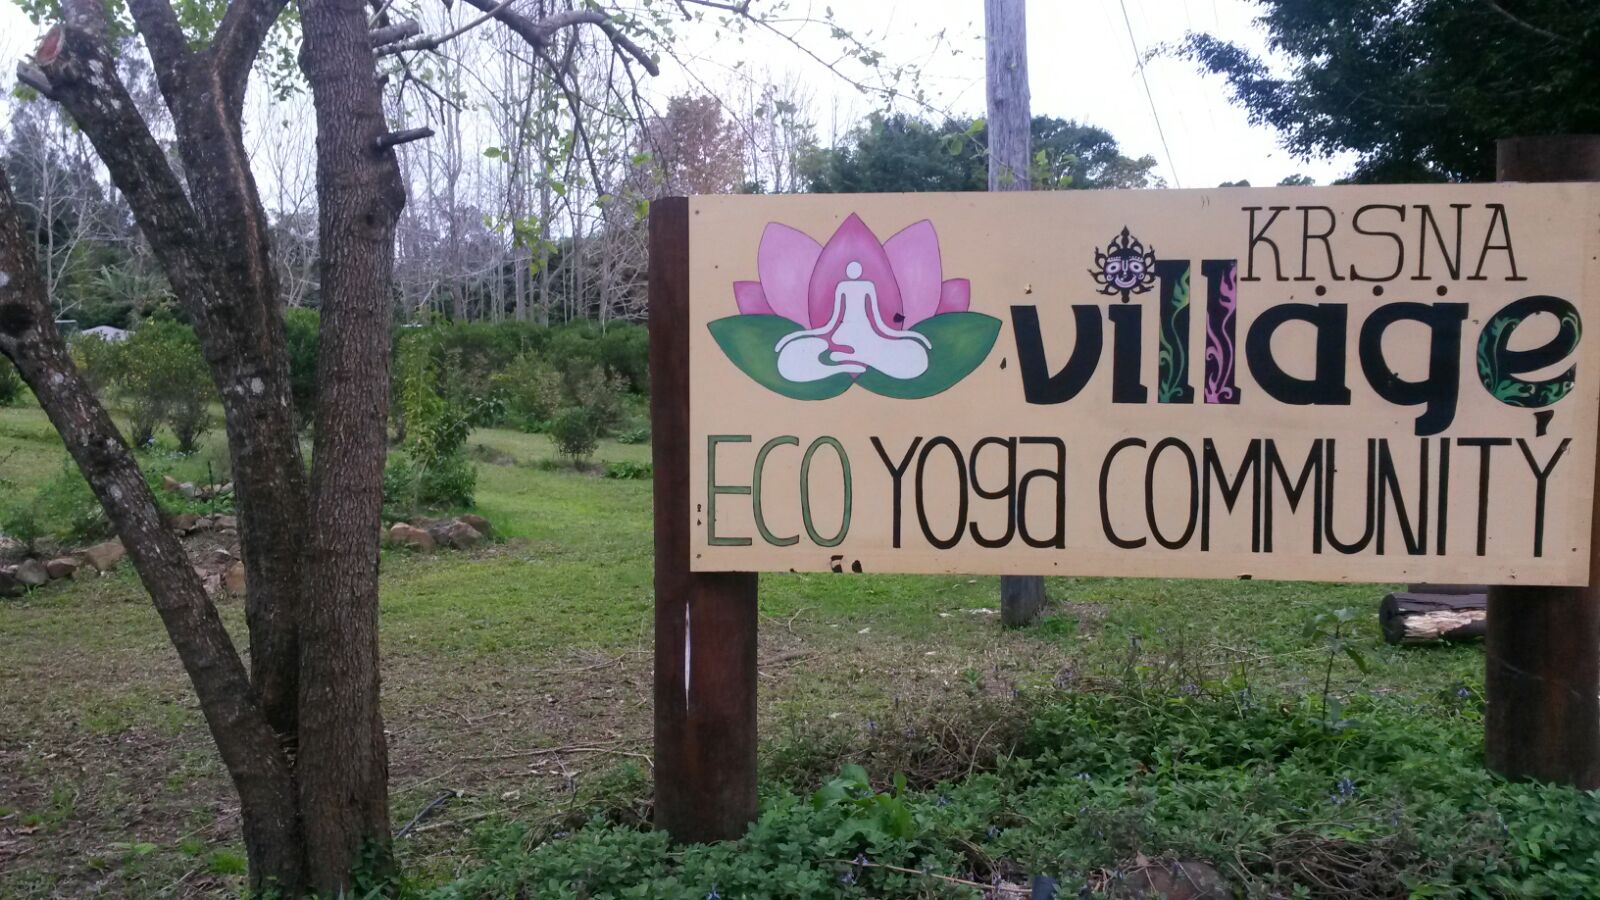 1 ecoyoga community